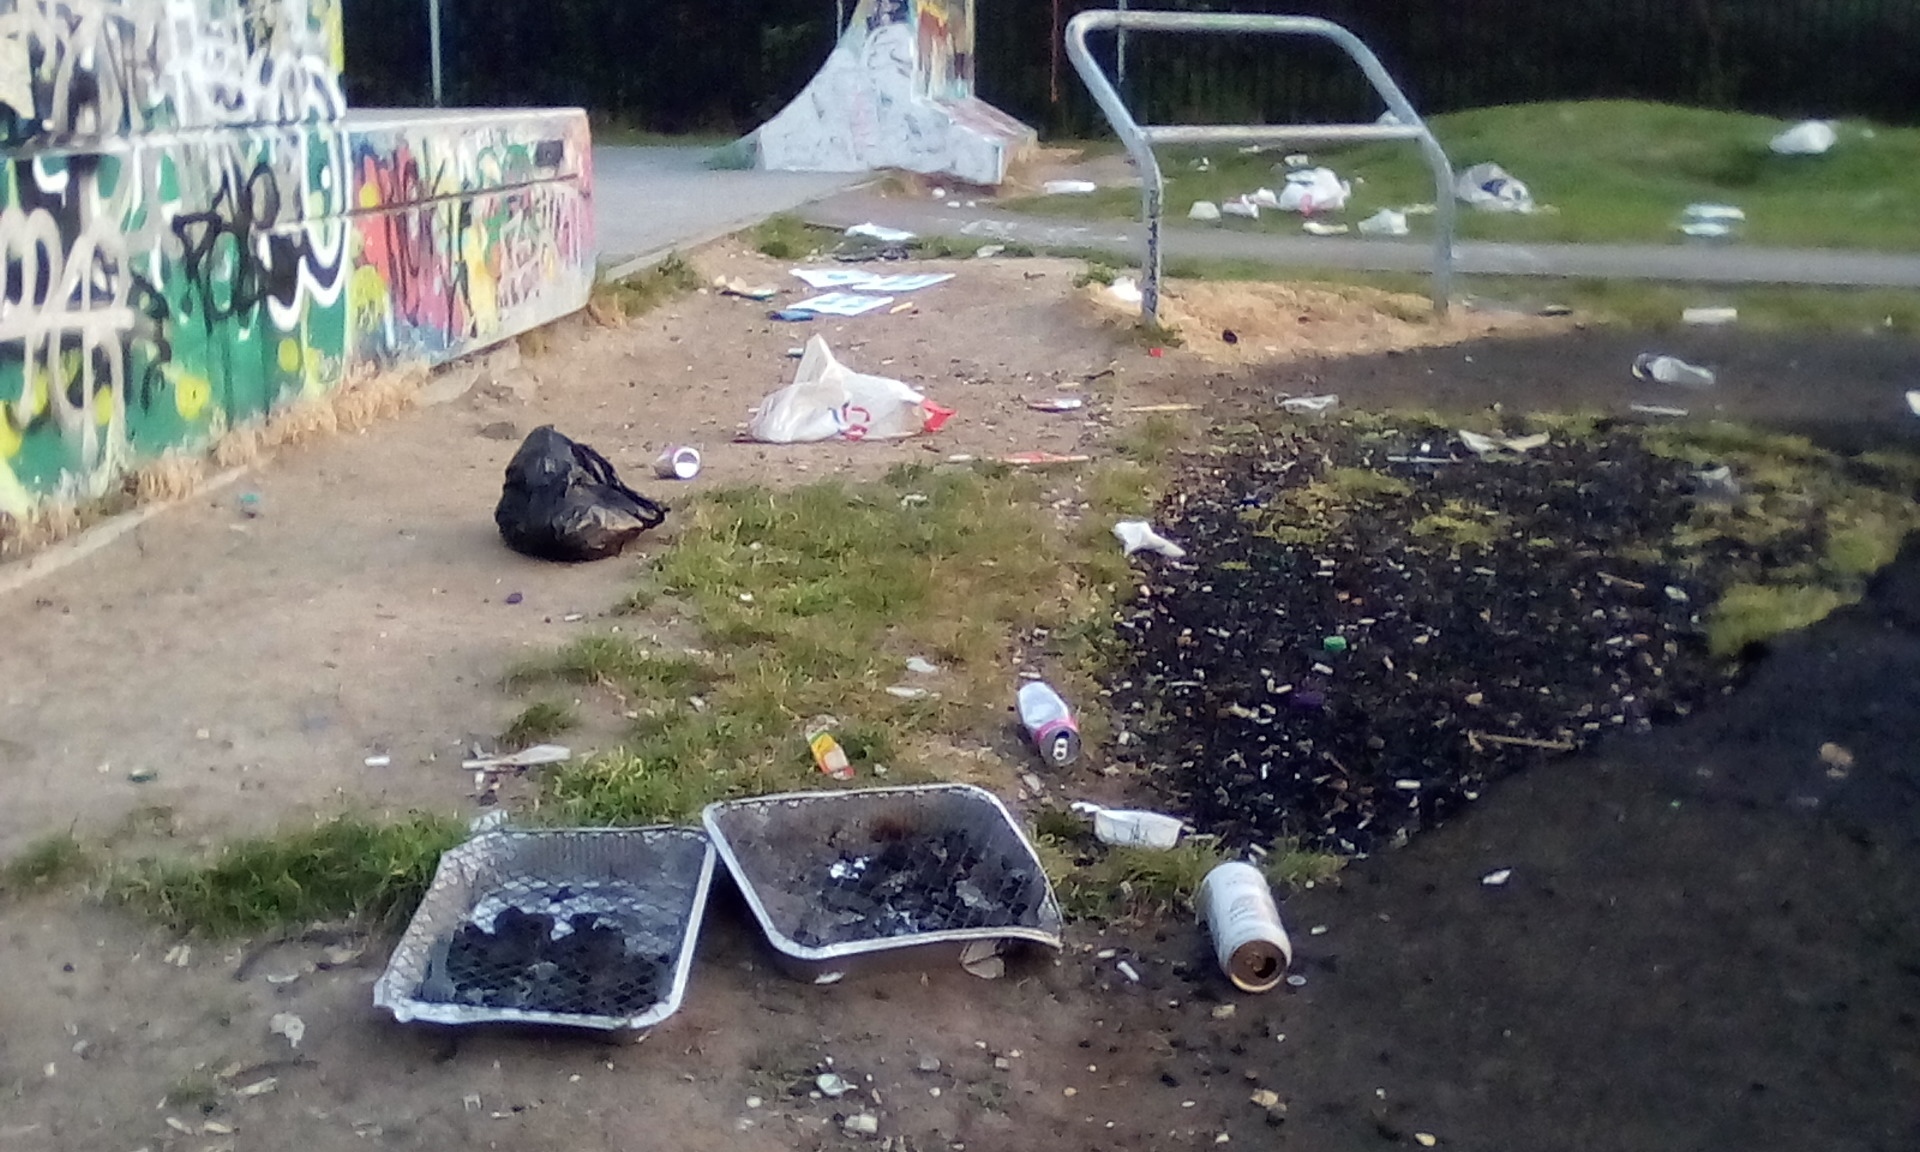 Rubbish - the skatepark after the bank holiday